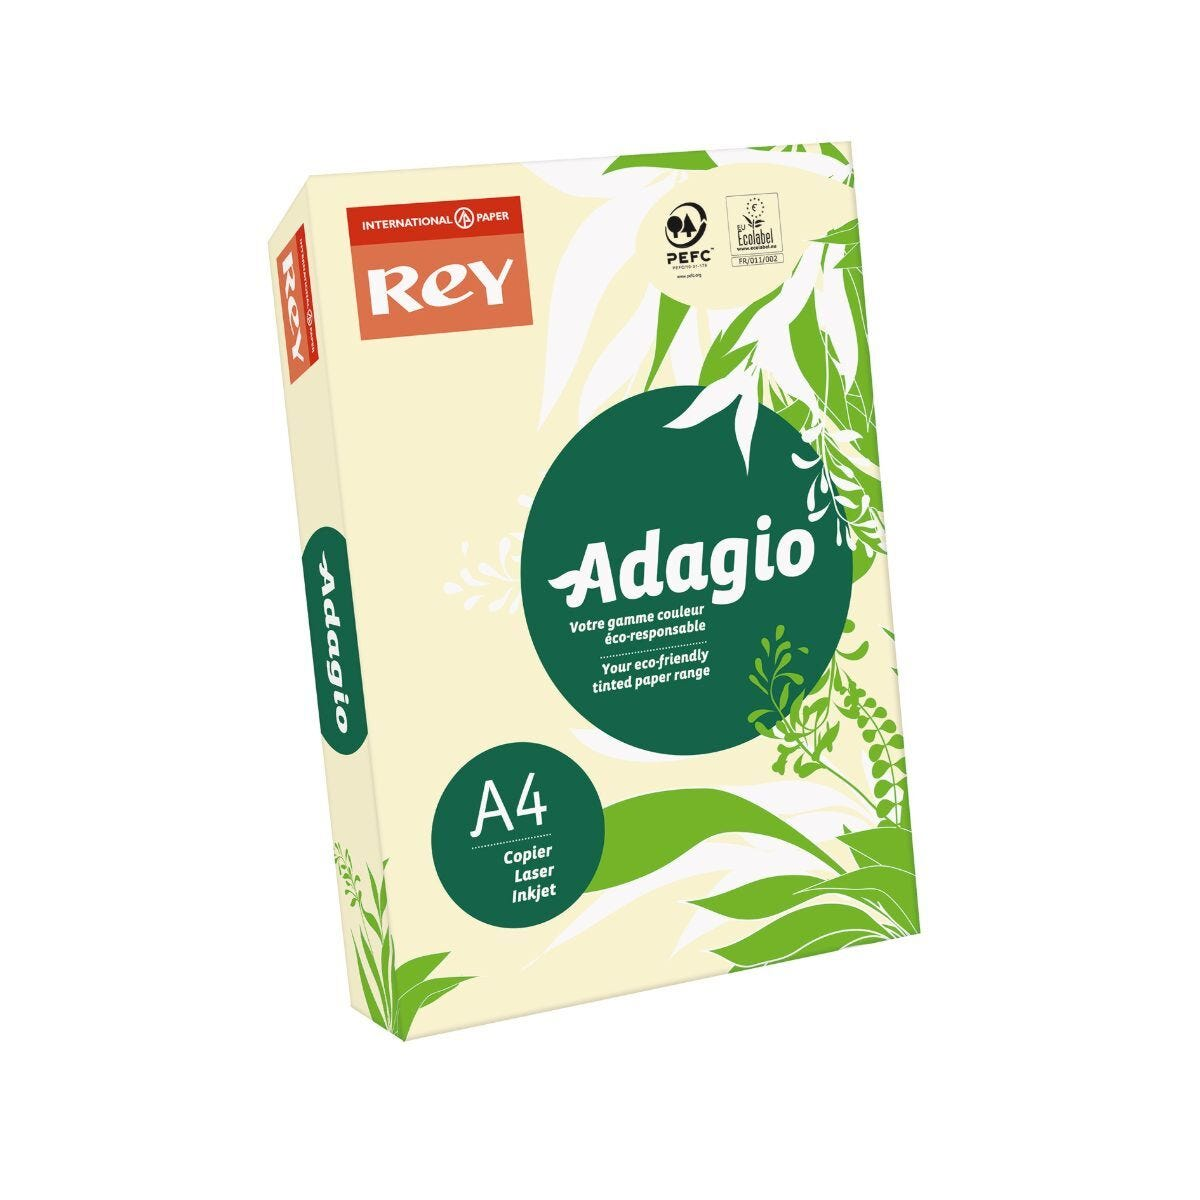 Rey Adagio Ream of Paper Pastel Coloured A4 80gsm 500 Sheets Ivory